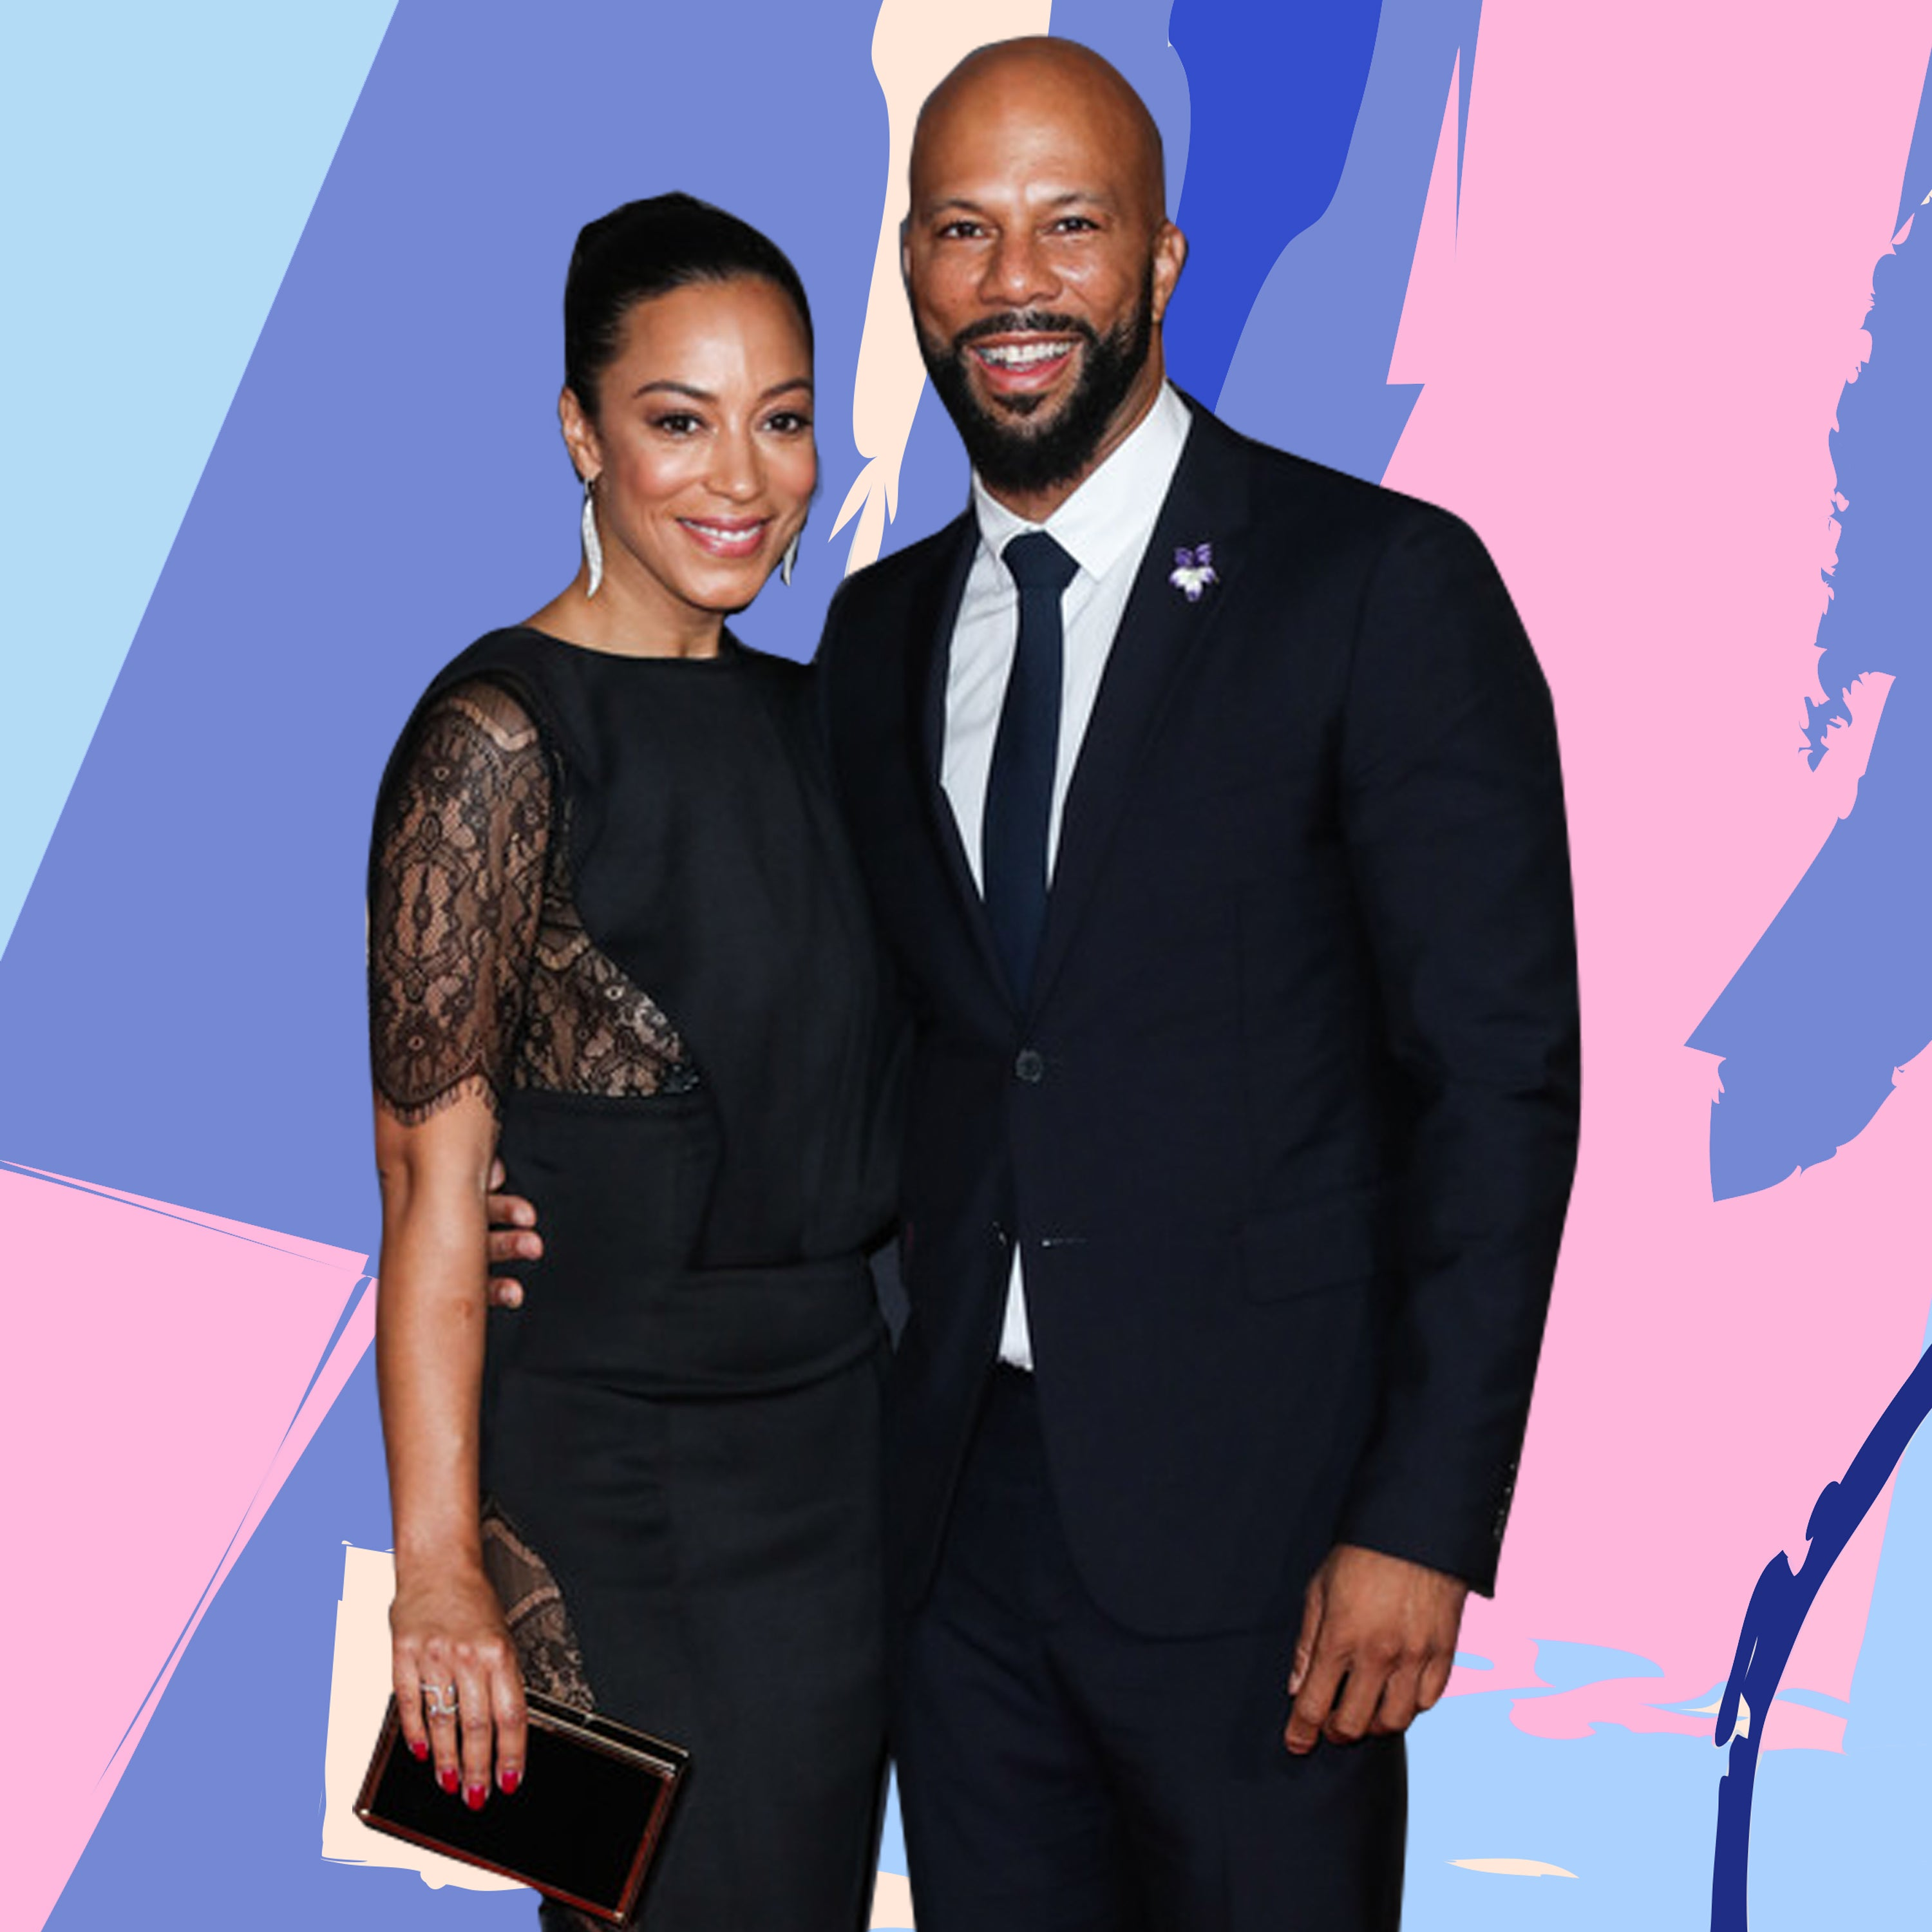 Common and Angela Rye Call It Quits, Remain Good Friends